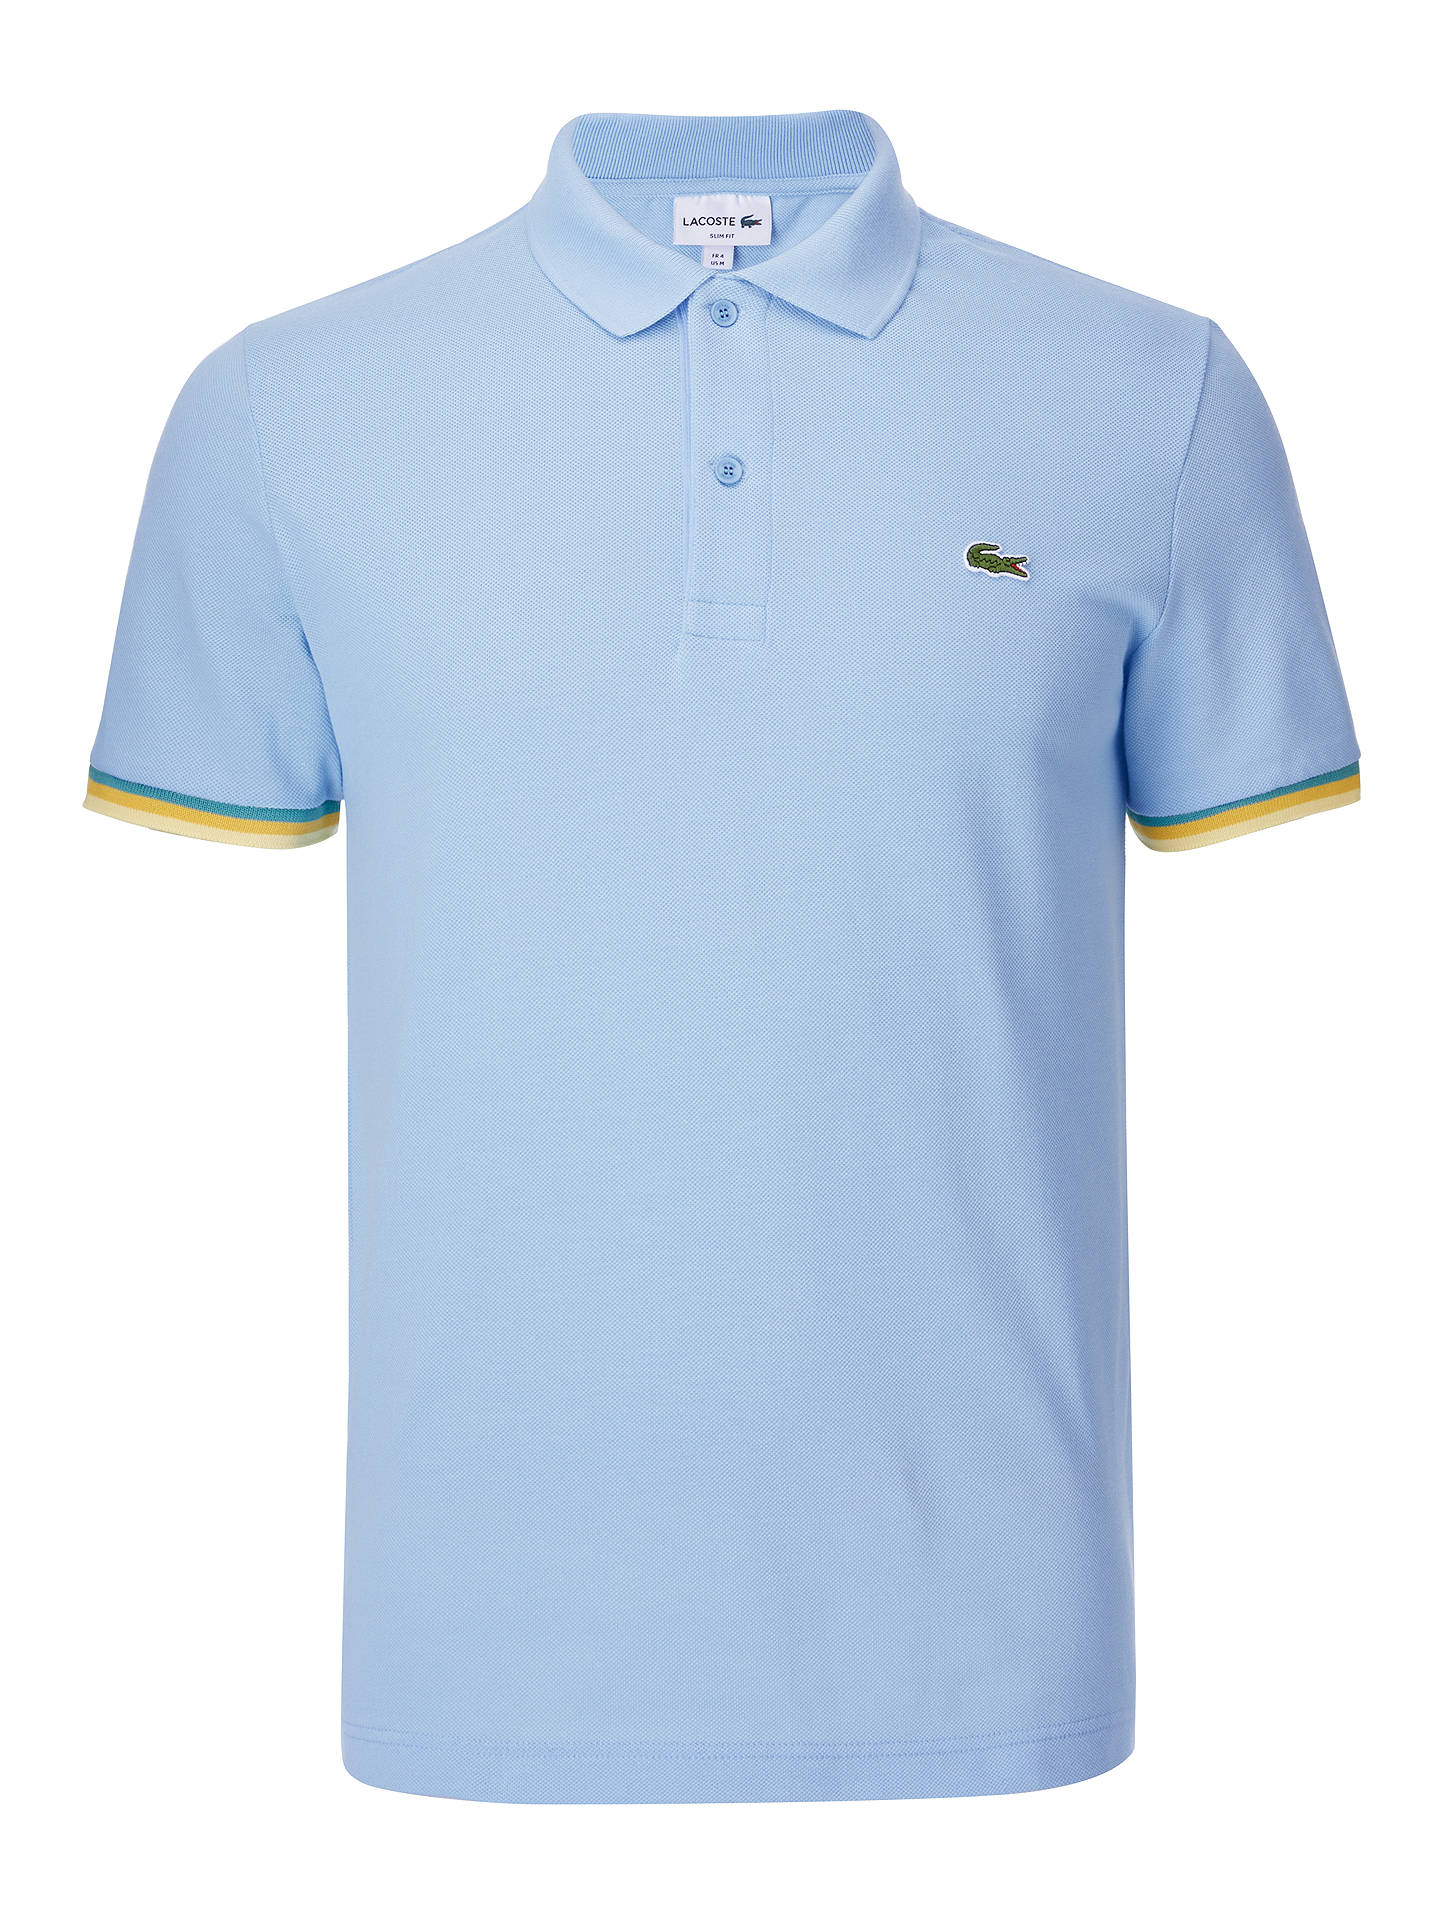 beb57f983d ... Buy Lacoste Tipped Short Sleeve Polo Shirt, Blue, XL Online at  johnlewis.com